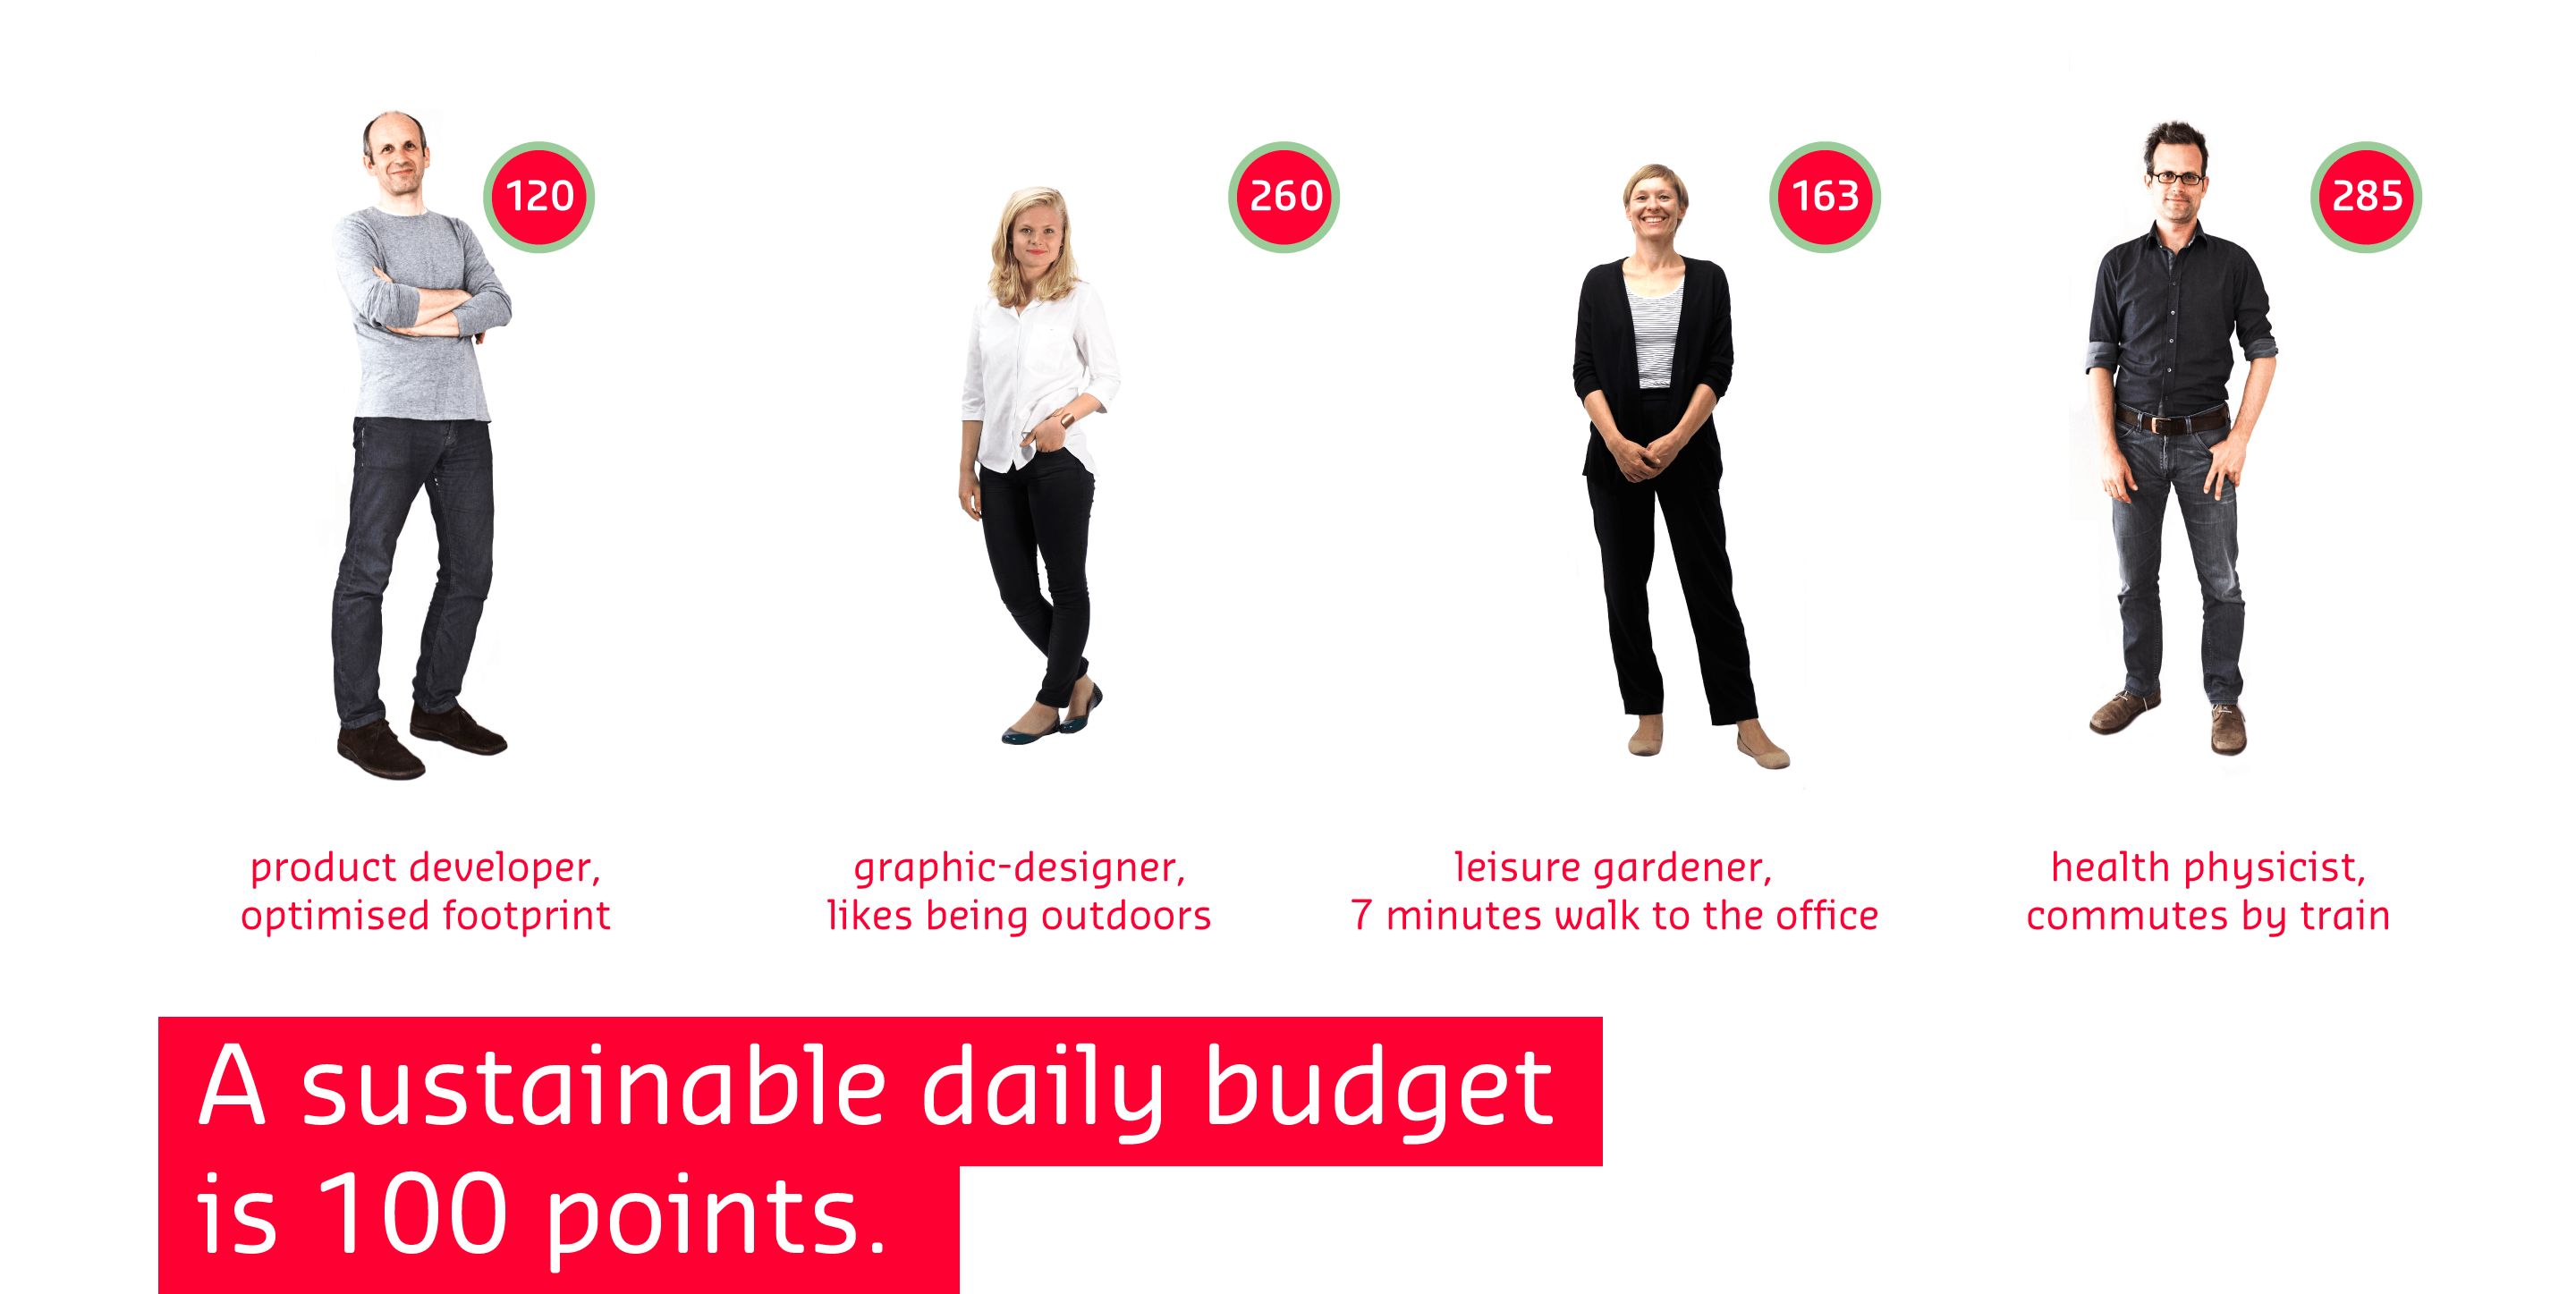 A sustainable daily budget is 100 points